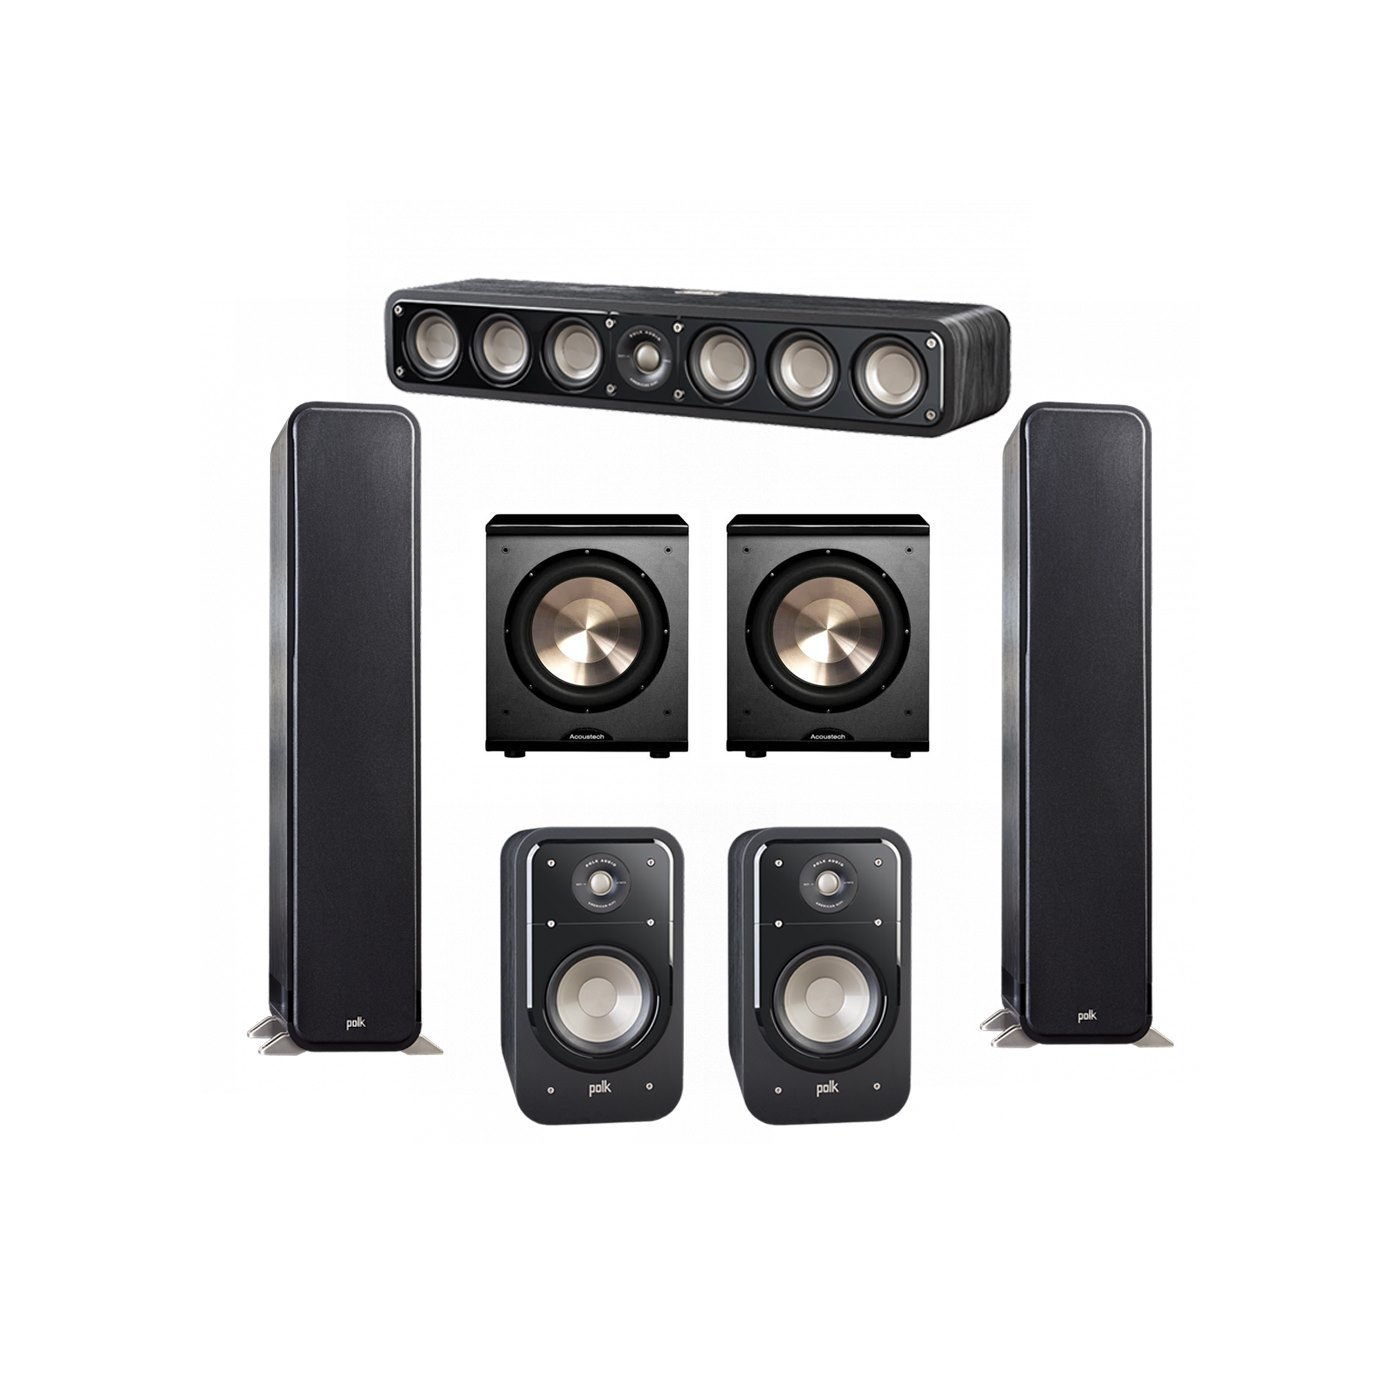 Polk Audio Signature 5.2 System with 2 S55 Tower Speaker, 1 Polk S35 Center Speaker, 2 Polk S20 Bookshelf Speaker, 2 BIC/Acoustech Platinum Series PL-200 Subwoofer